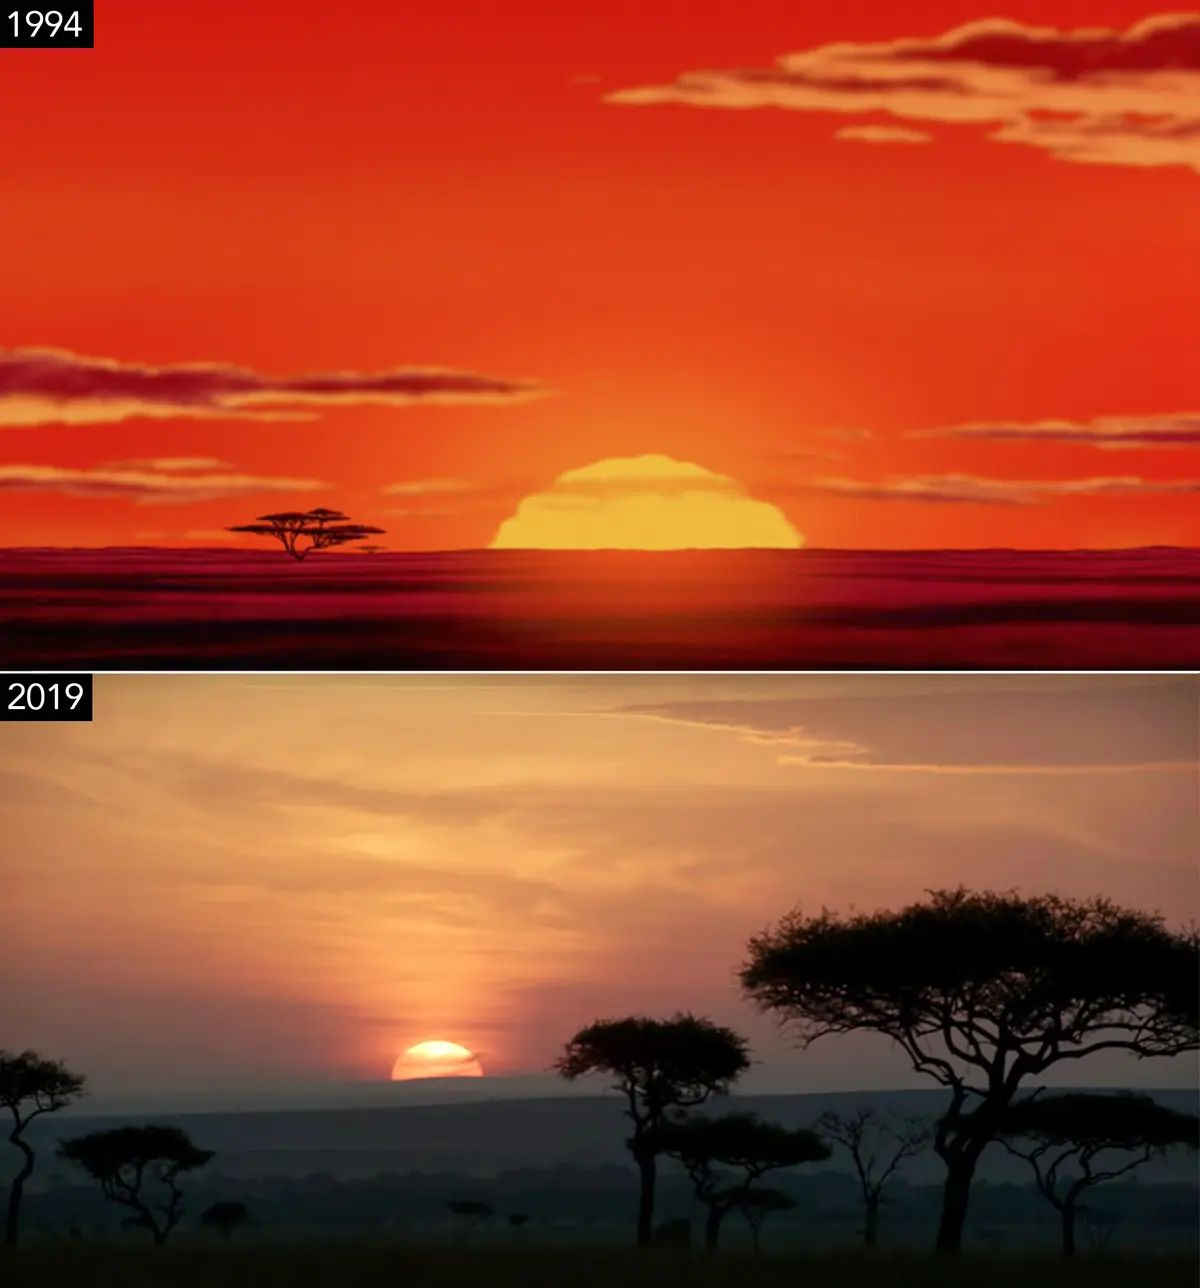 the lion king 1994 trailer